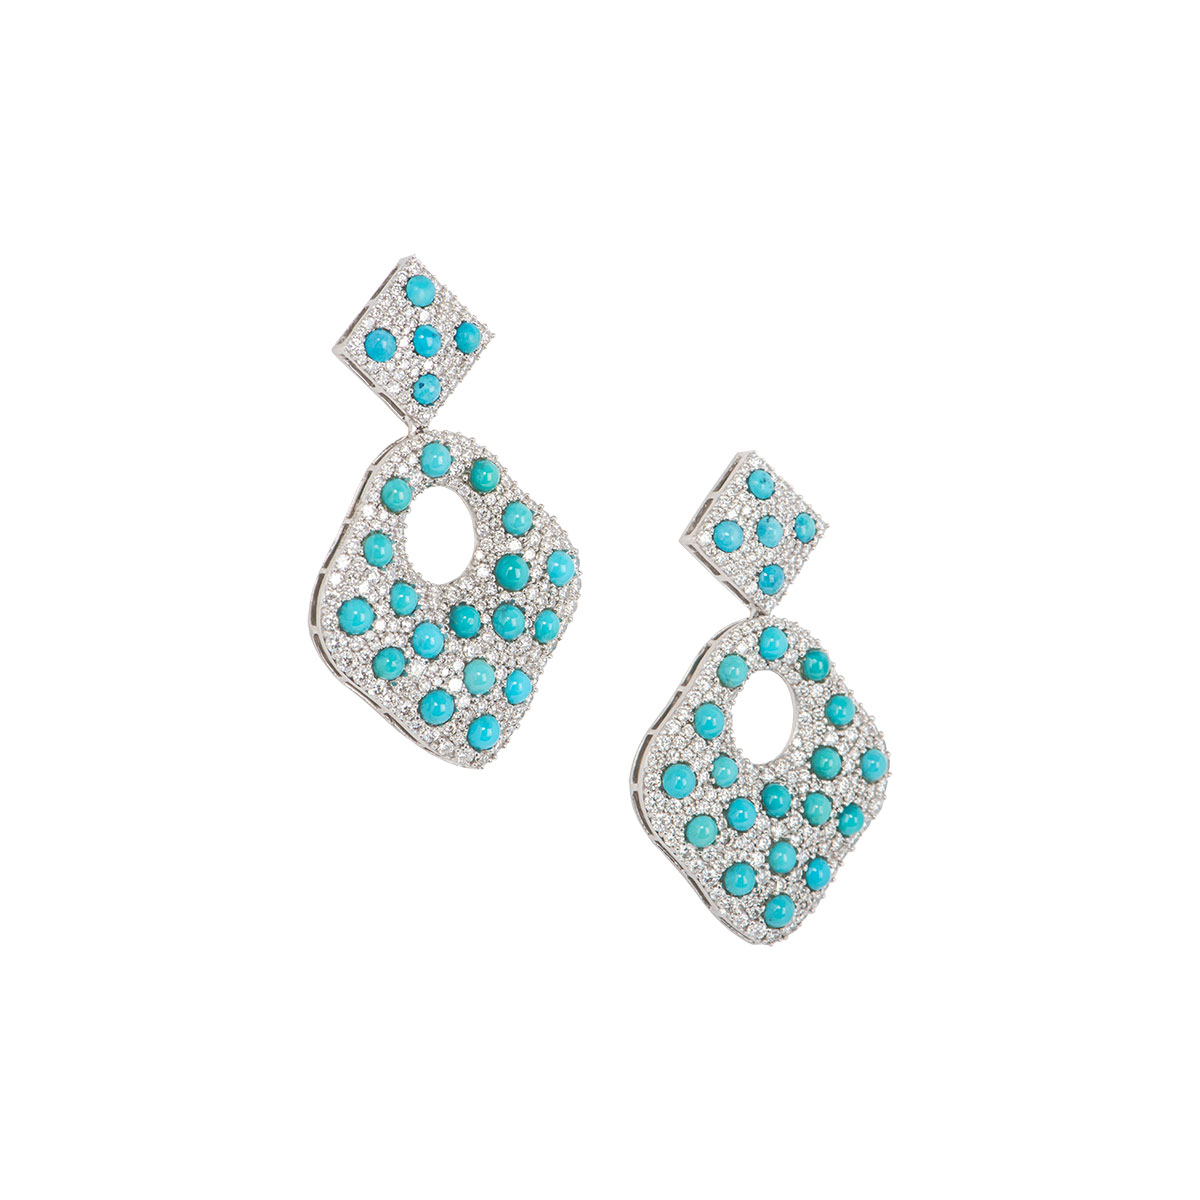 White Gold Diamond and Turquoise Drop Earrings